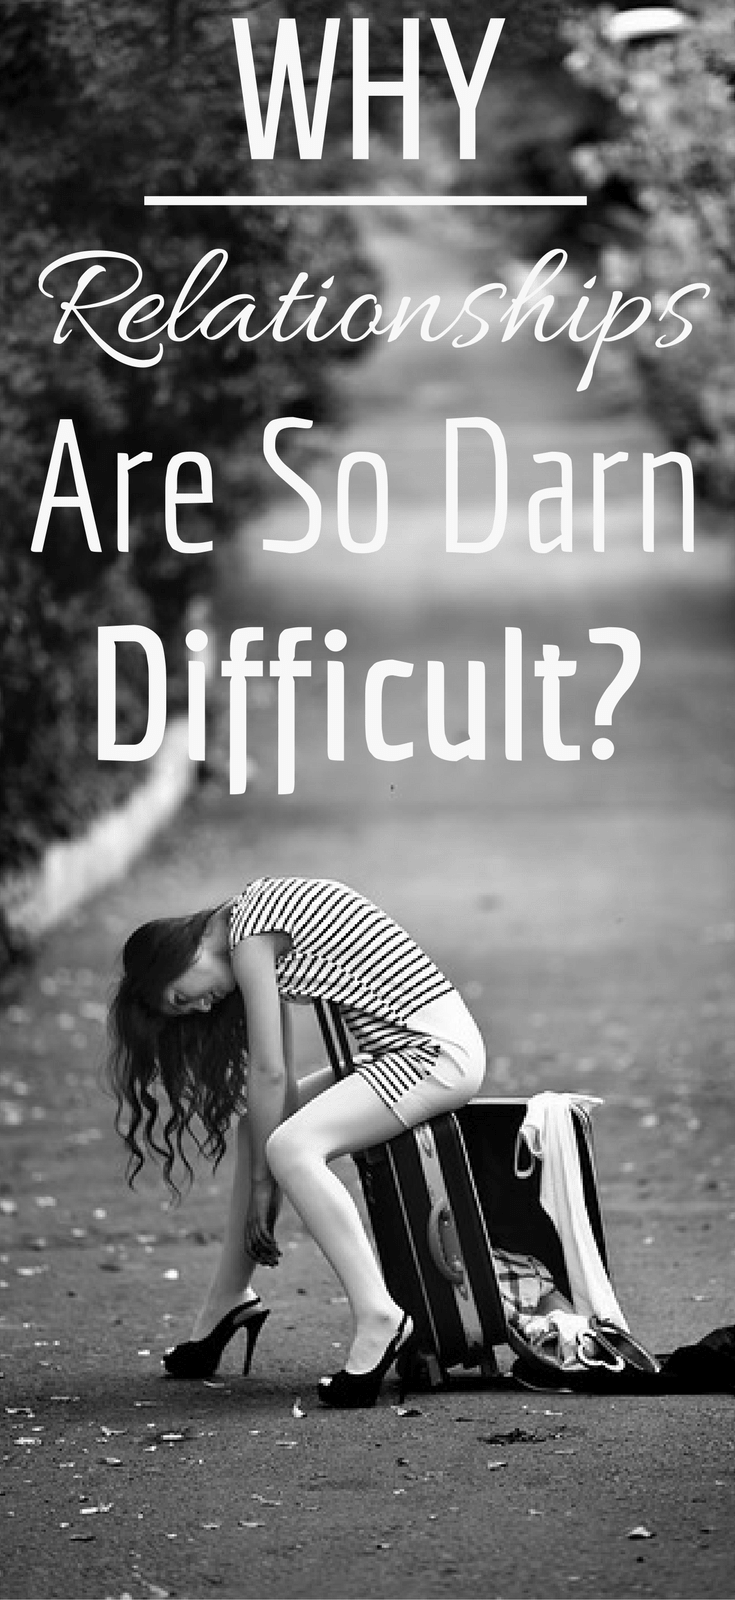 Why Relationships Are So Darn Difficult?